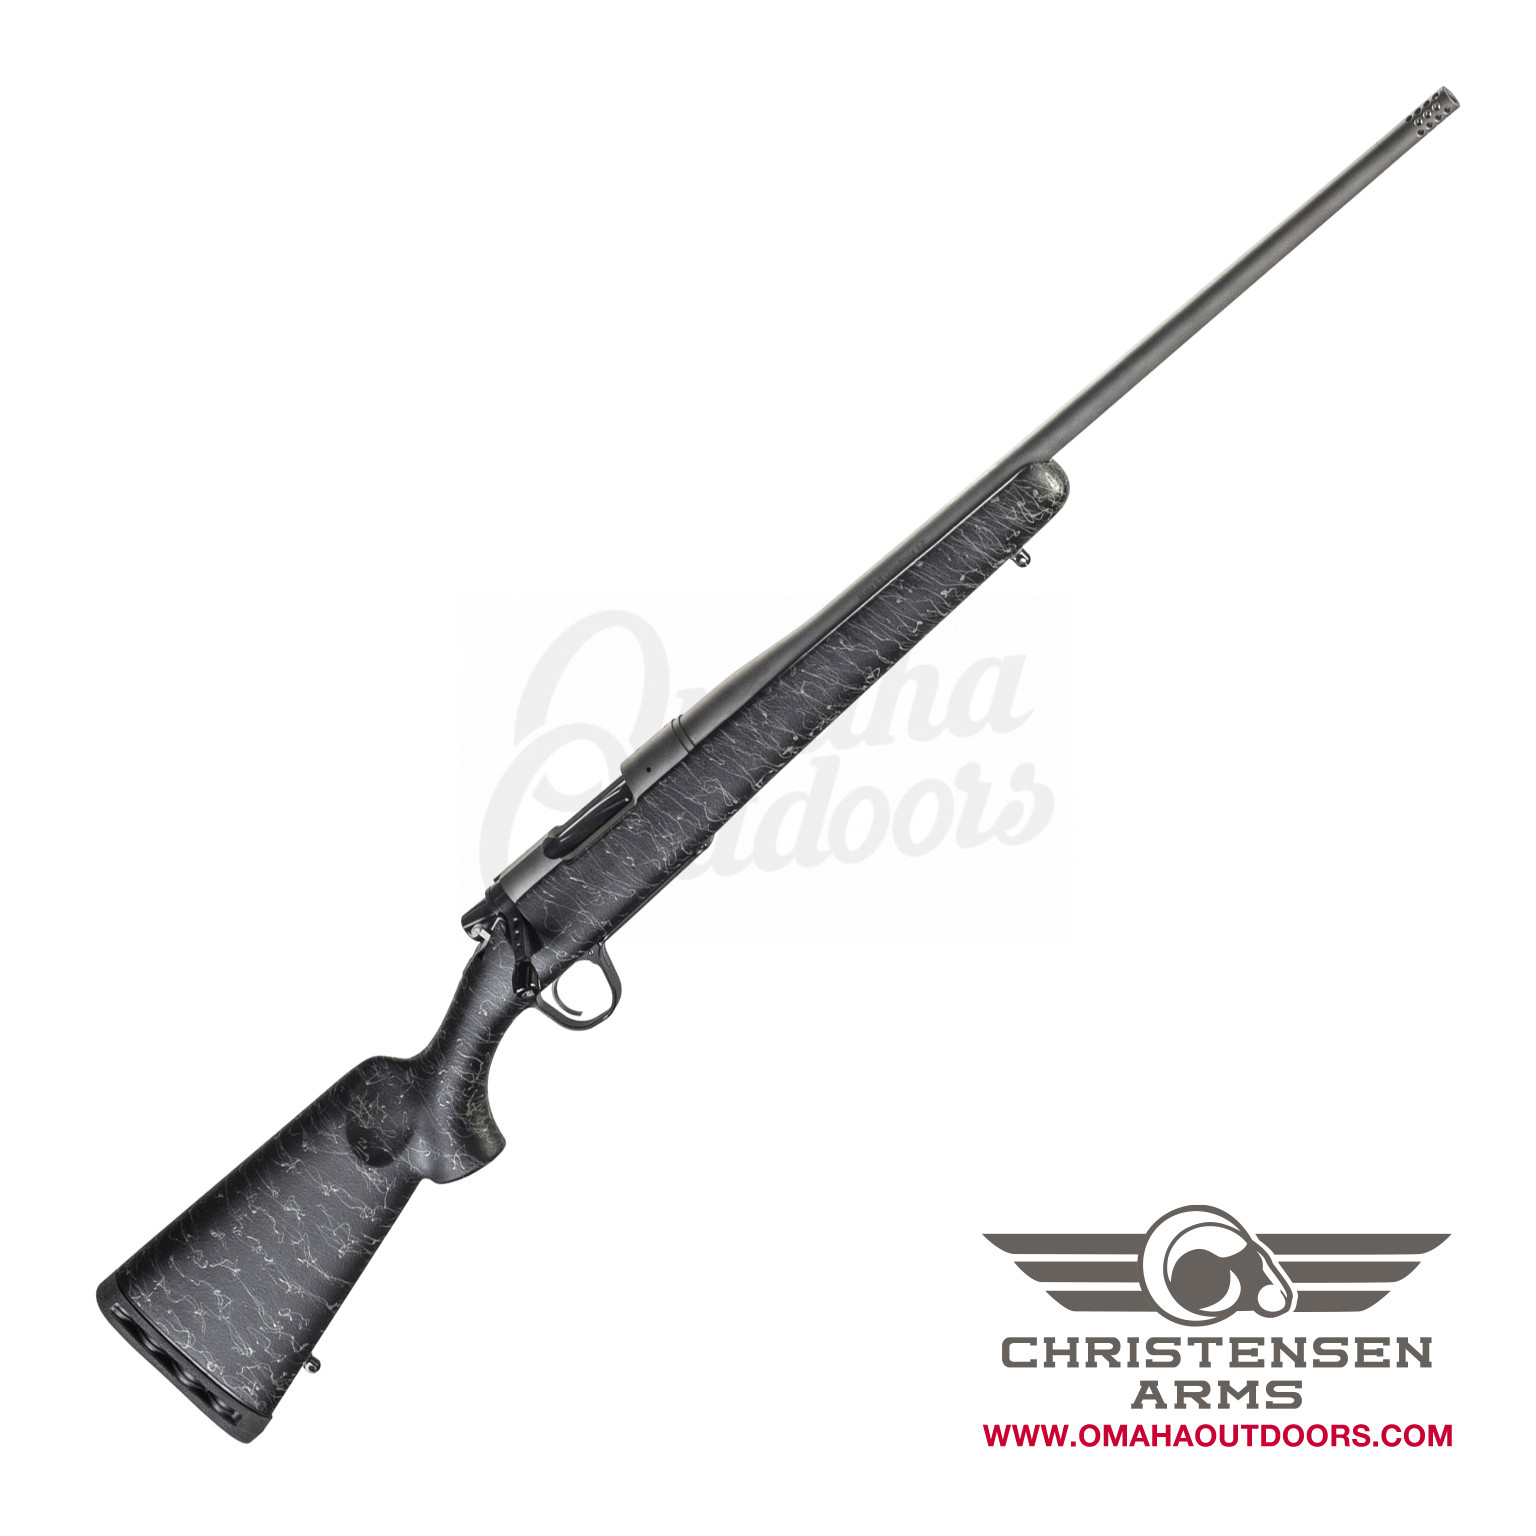 Christensen Arms Mesa Bolt Rifle 308 Winchester 4 RD